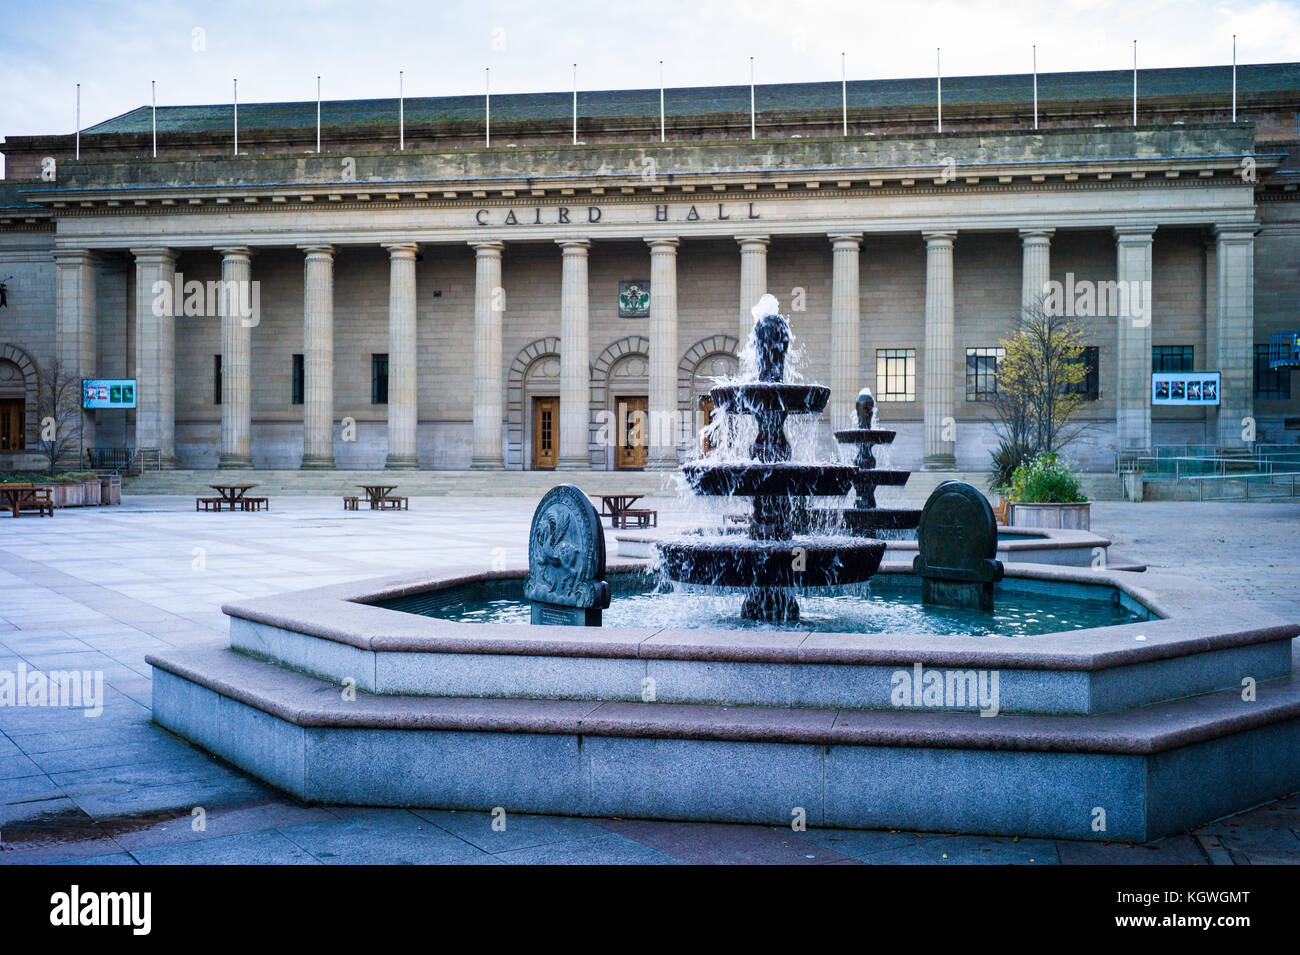 Caird Hall Dundee - concert venue in Dundee, Scotland. Opened in 1923 it was named after its benefactor, Dundee - Stock Image